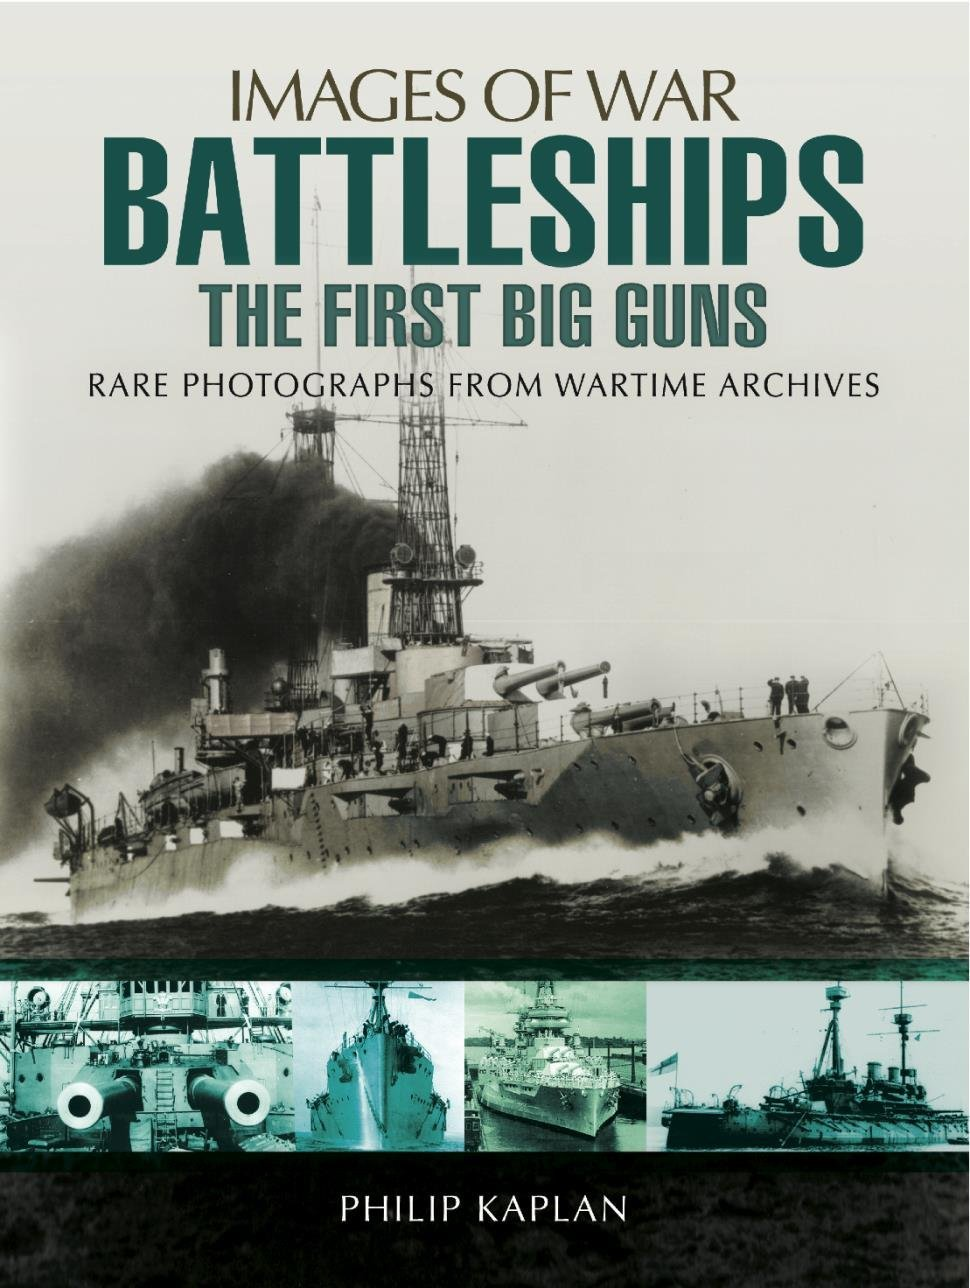 Battleships: The First Big Guns: Rare Photographs from Wartime Archives (Images of War) free download